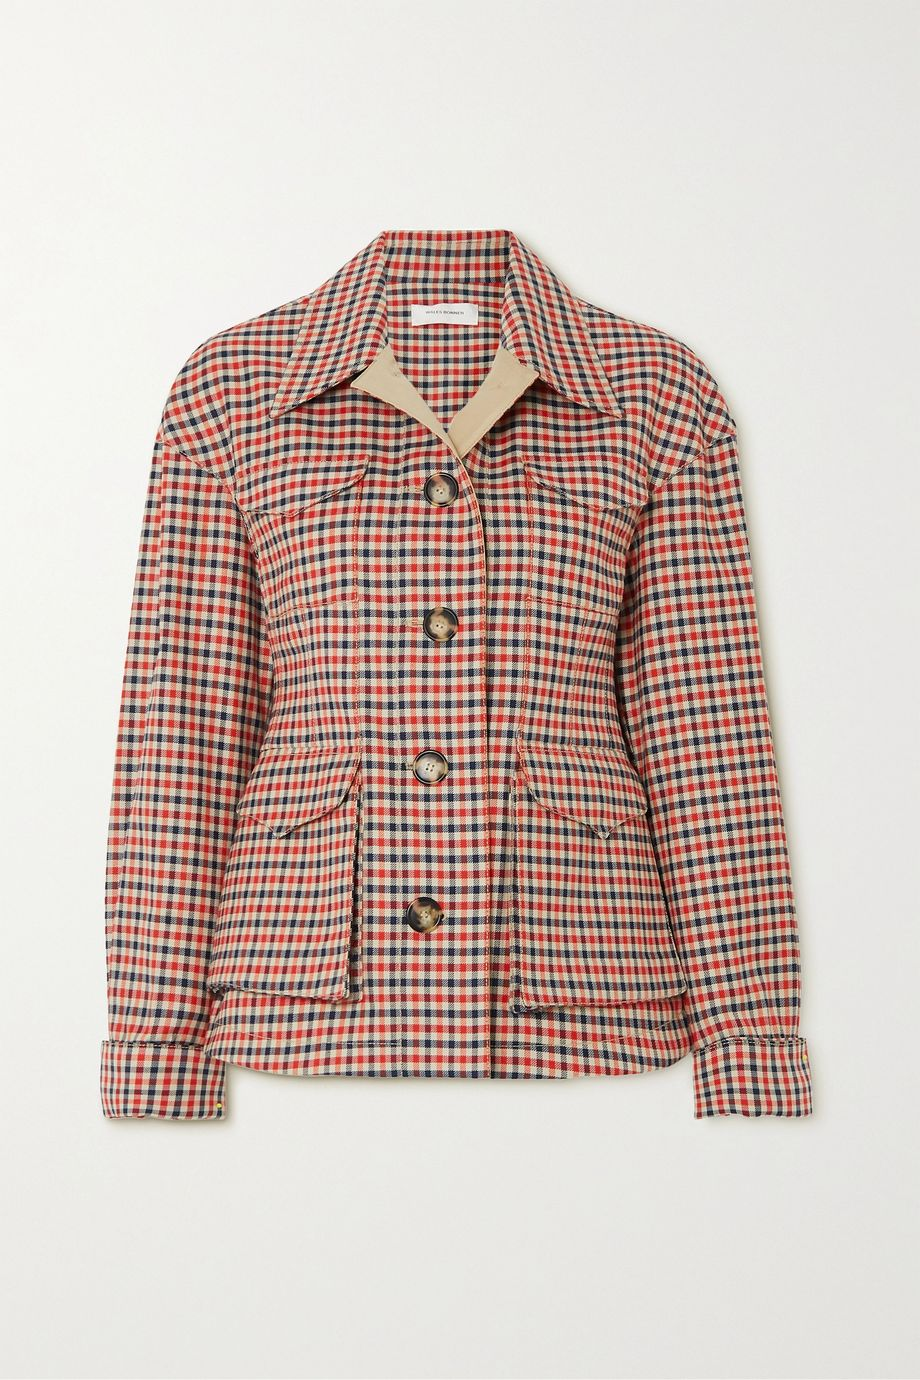 Wales Bonner Checked wool and cotton-blend jacket